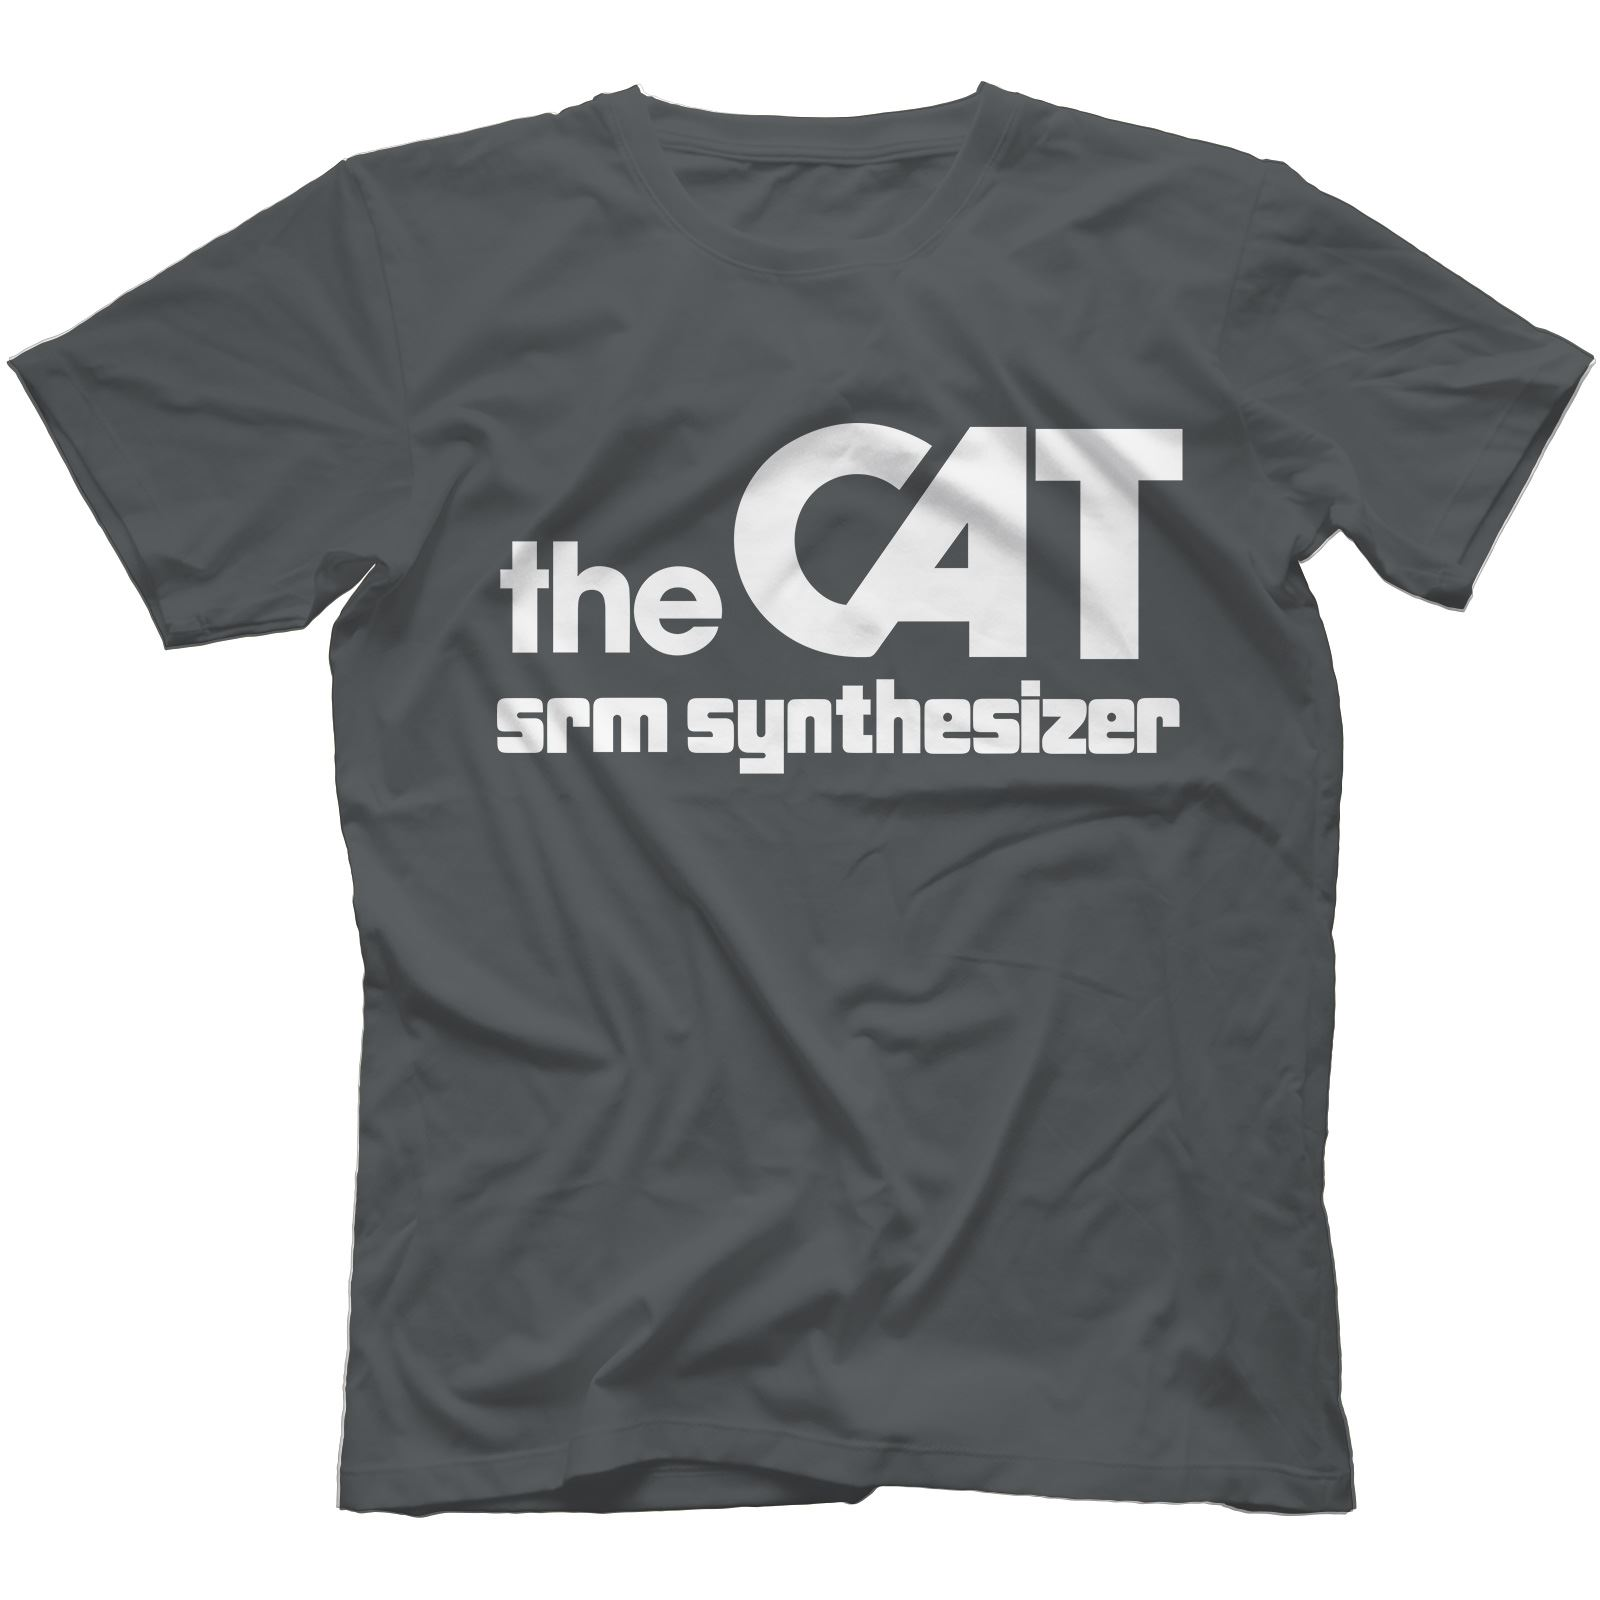 The-Cat-SRM-Synthesiser-T-Shirt-100-Cotton-Retro-Analog-Arp-Odyssey Indexbild 14